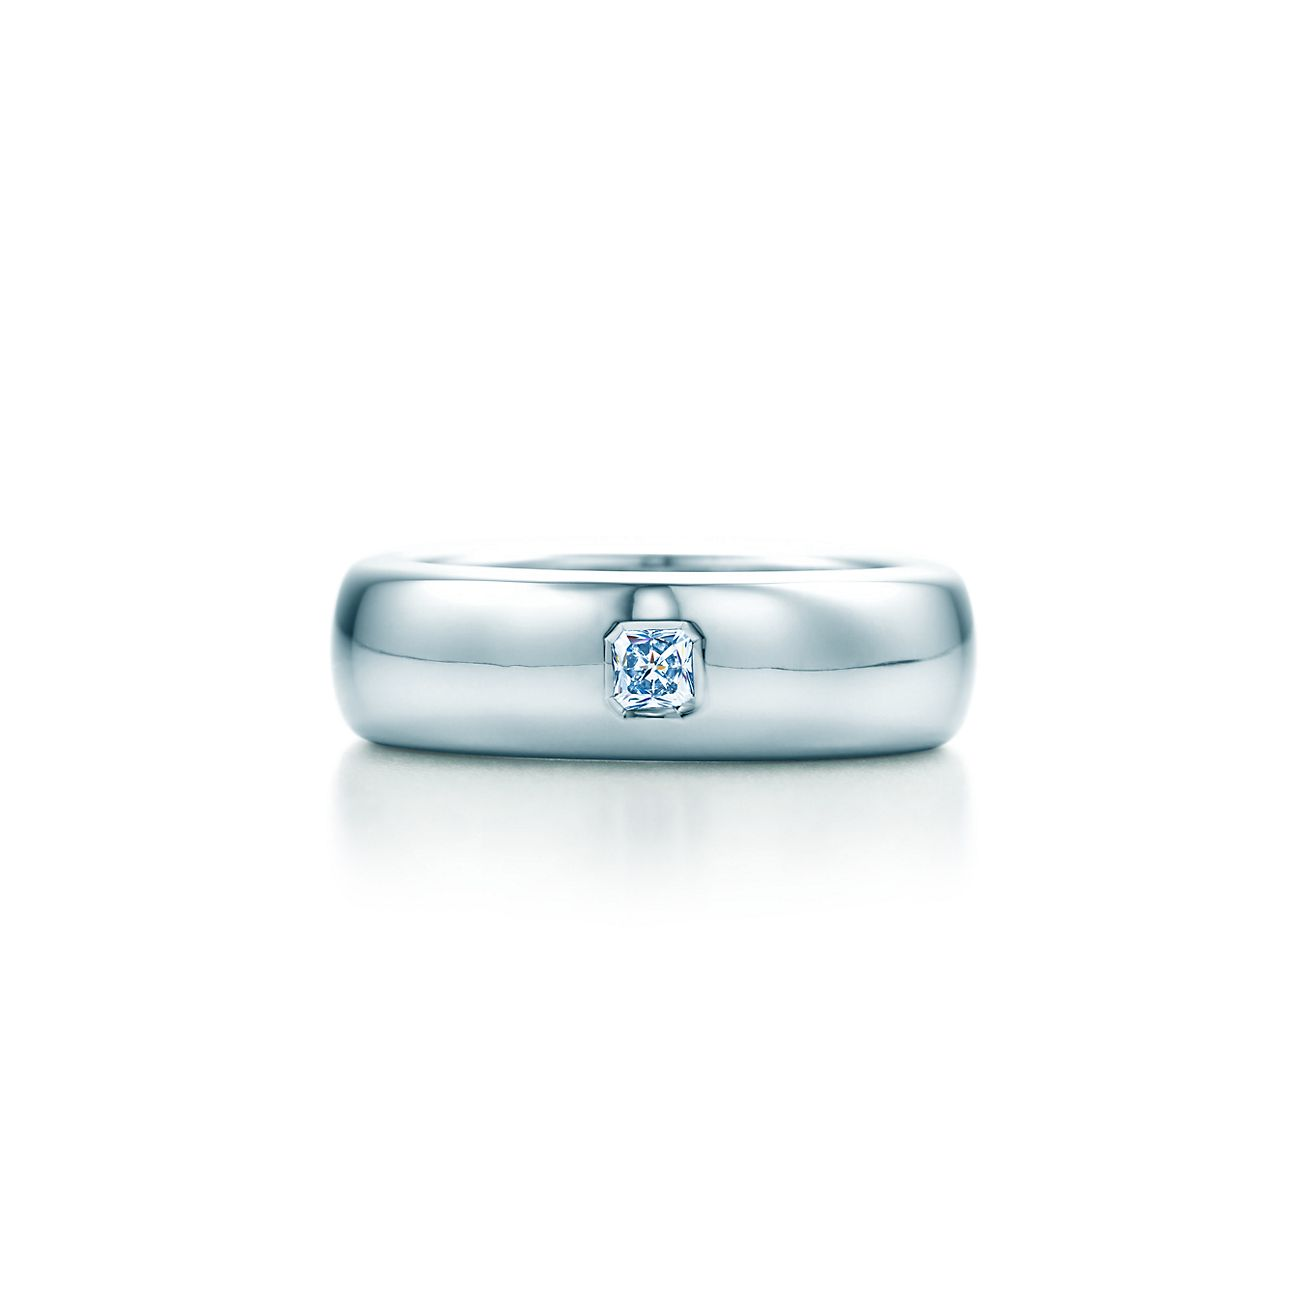 Tiffany classic wedding band ring in platinum with a diamond 6 mm tiffany classicwedding band ring junglespirit Gallery